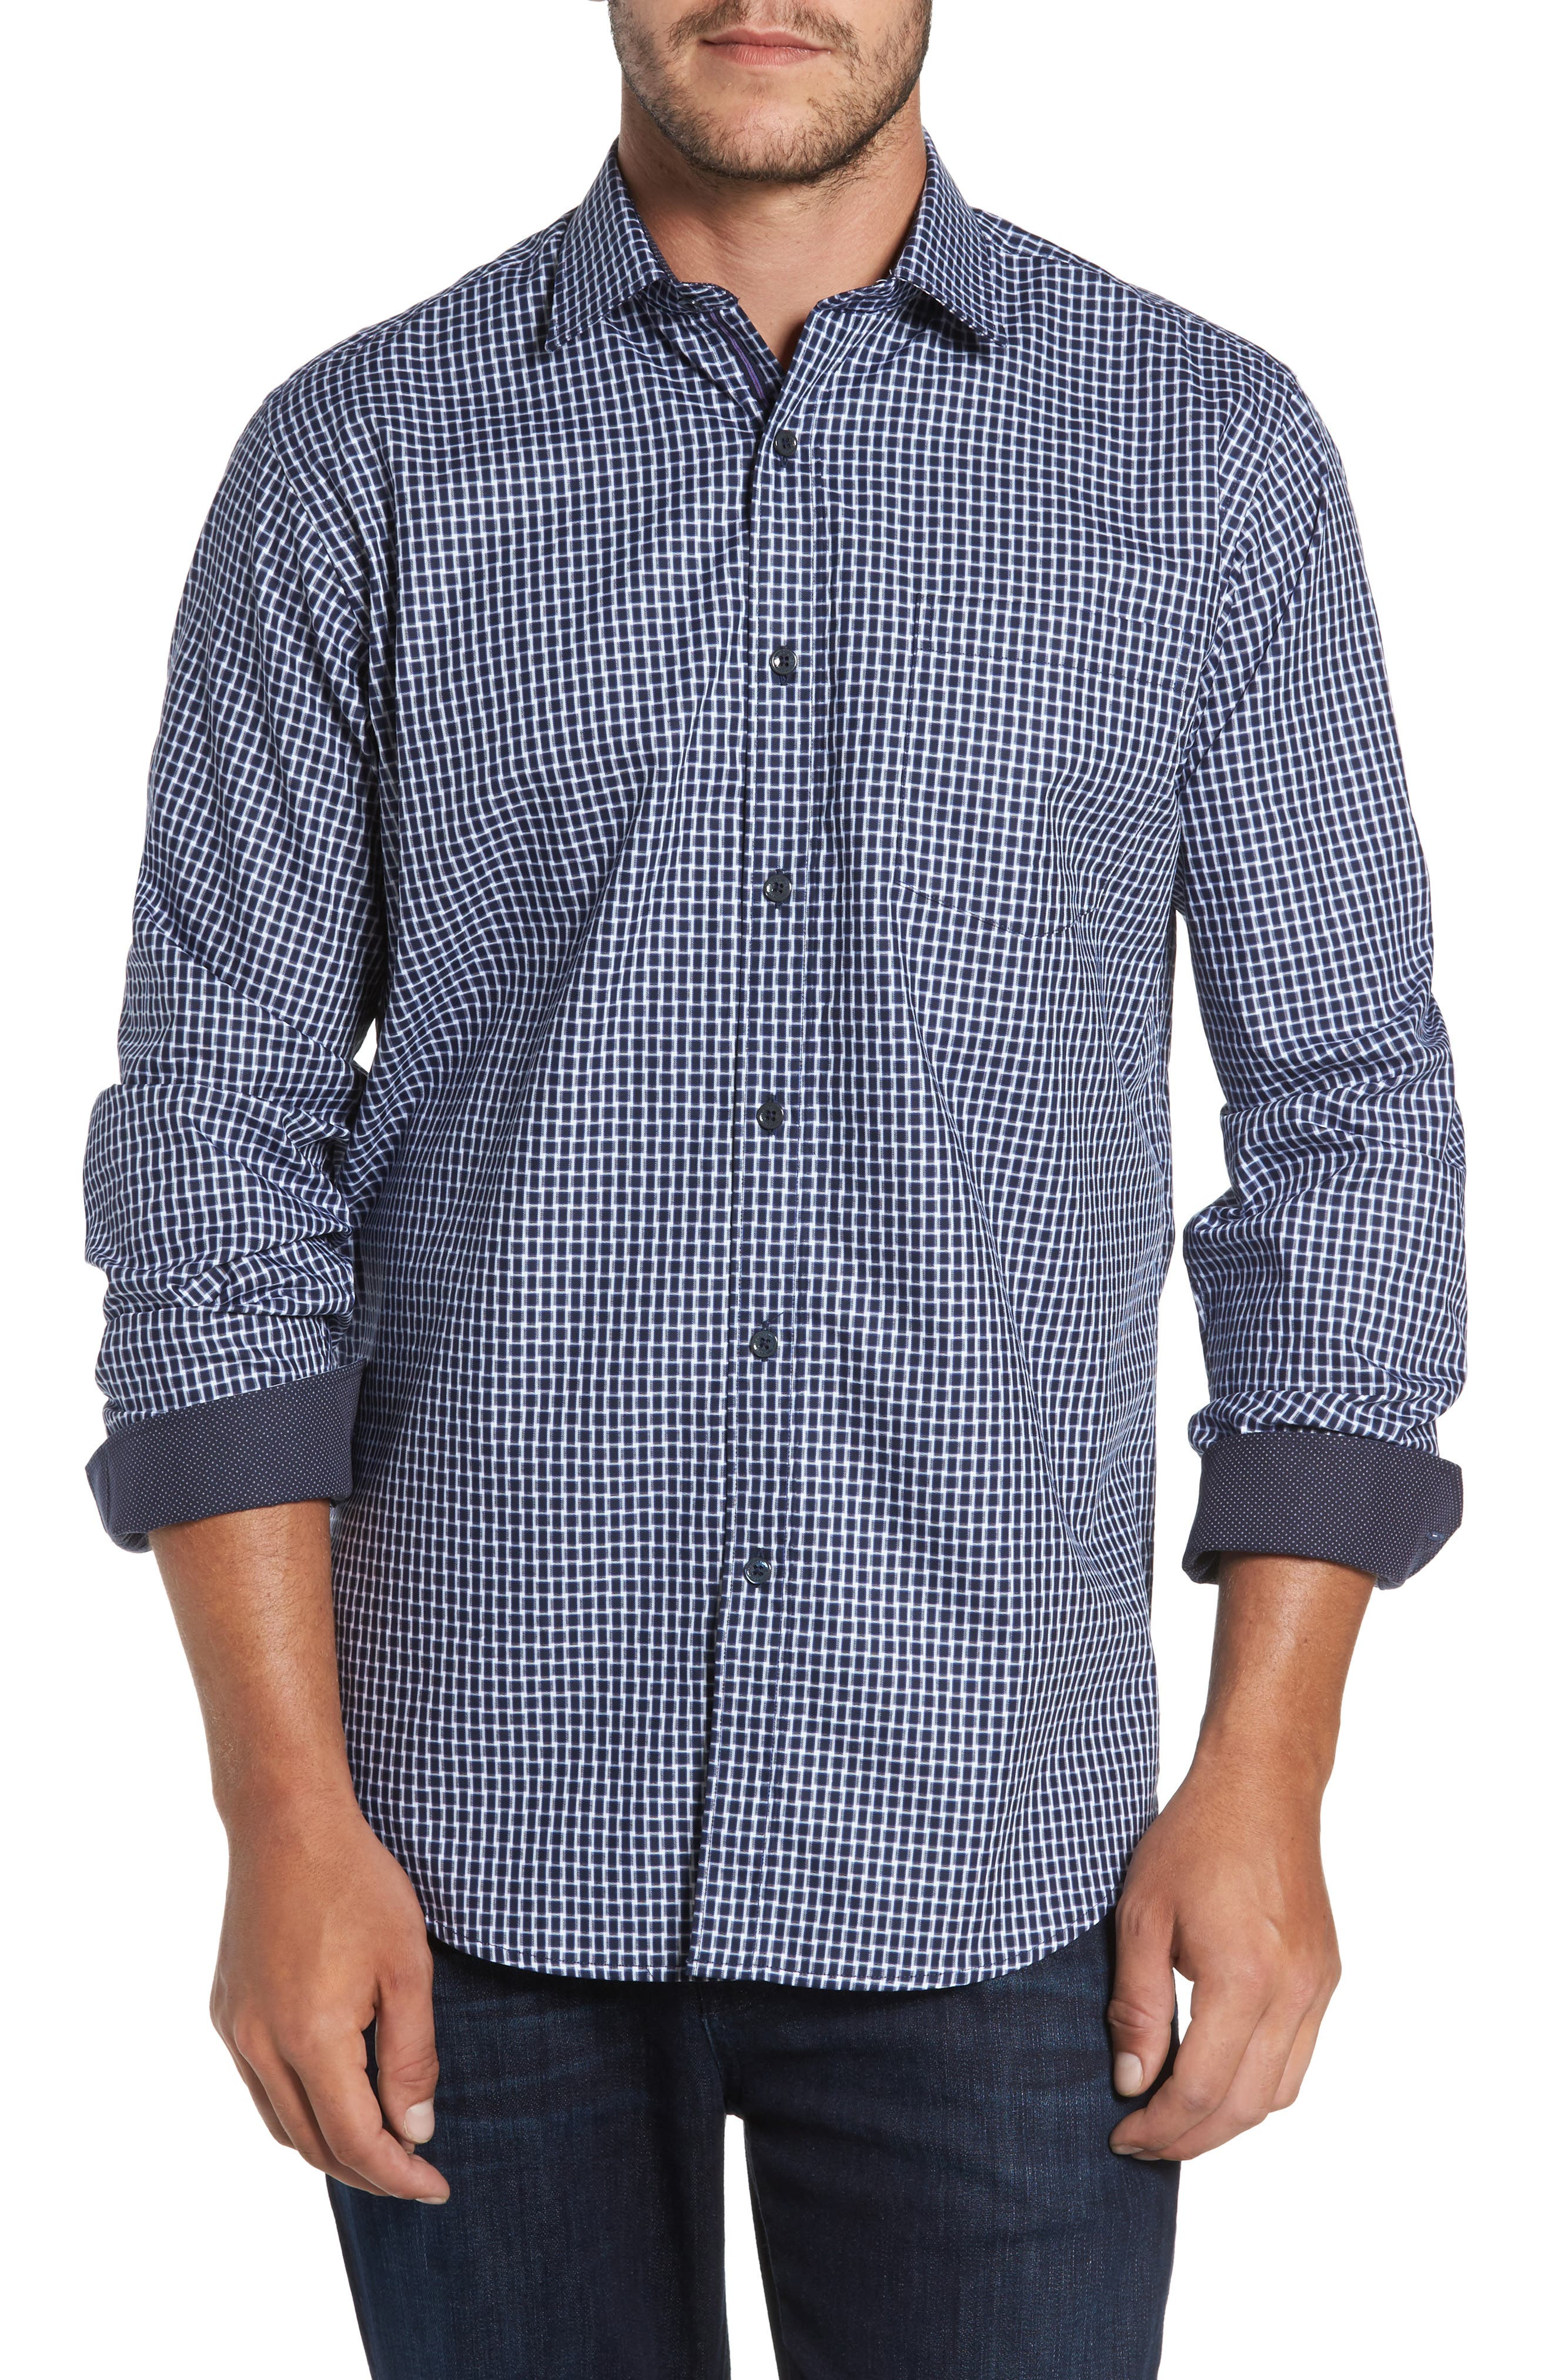 Classic Fit Geo Patterned Sport Shirt,                             Main thumbnail 1, color,                             Navy